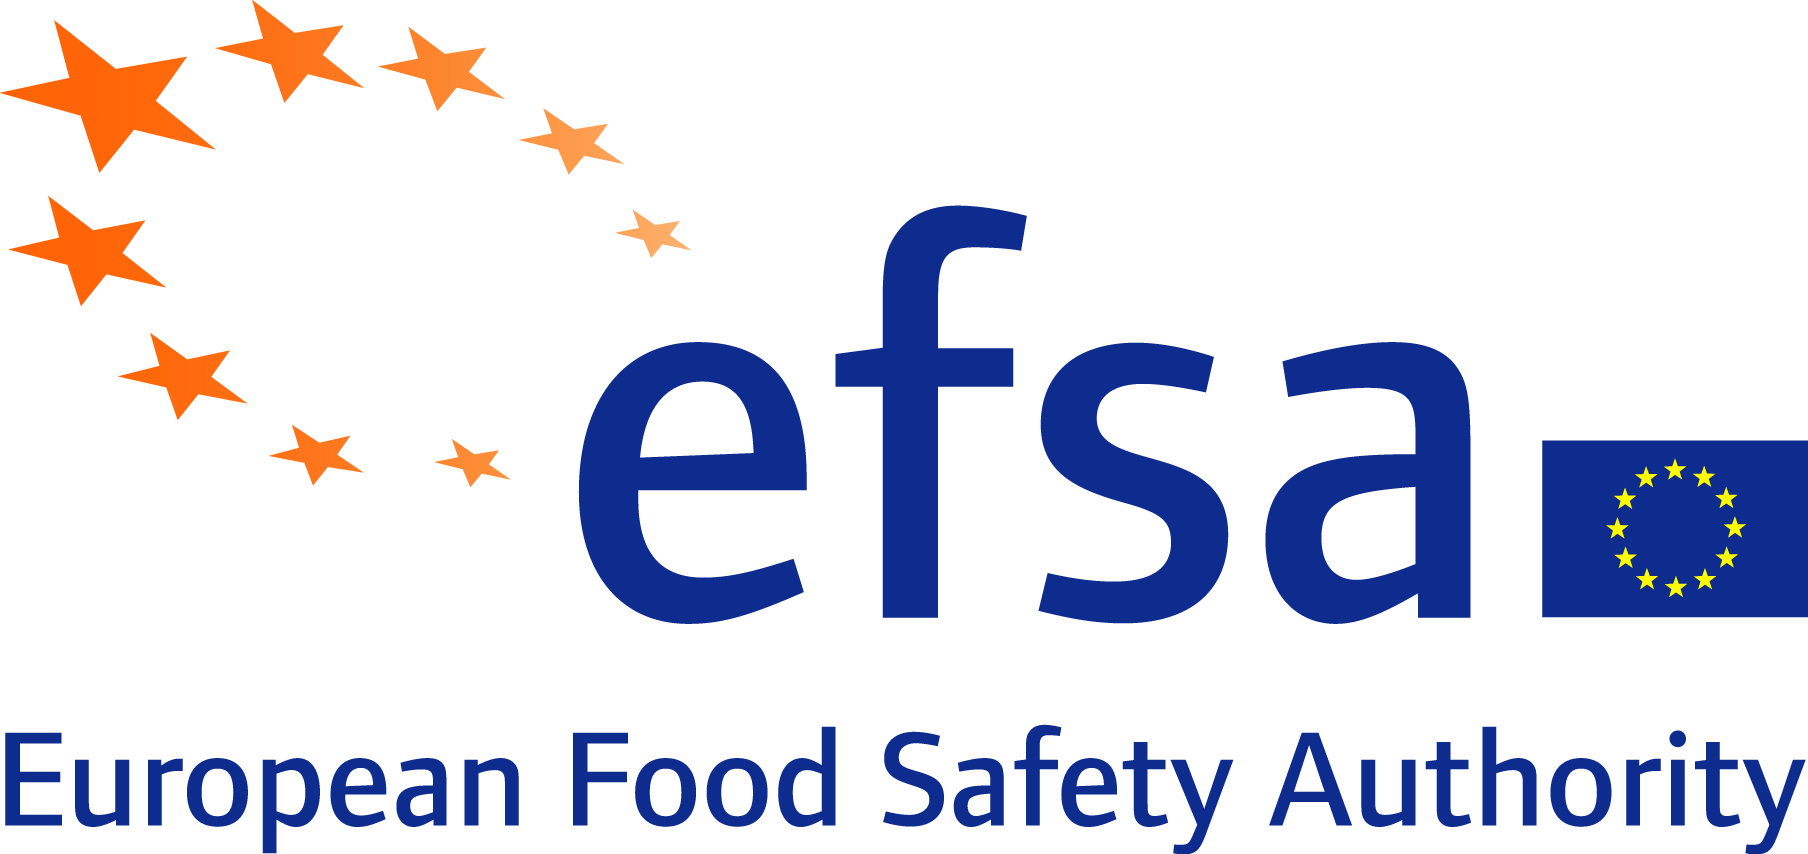 About EFSA | European Food Safety Authority